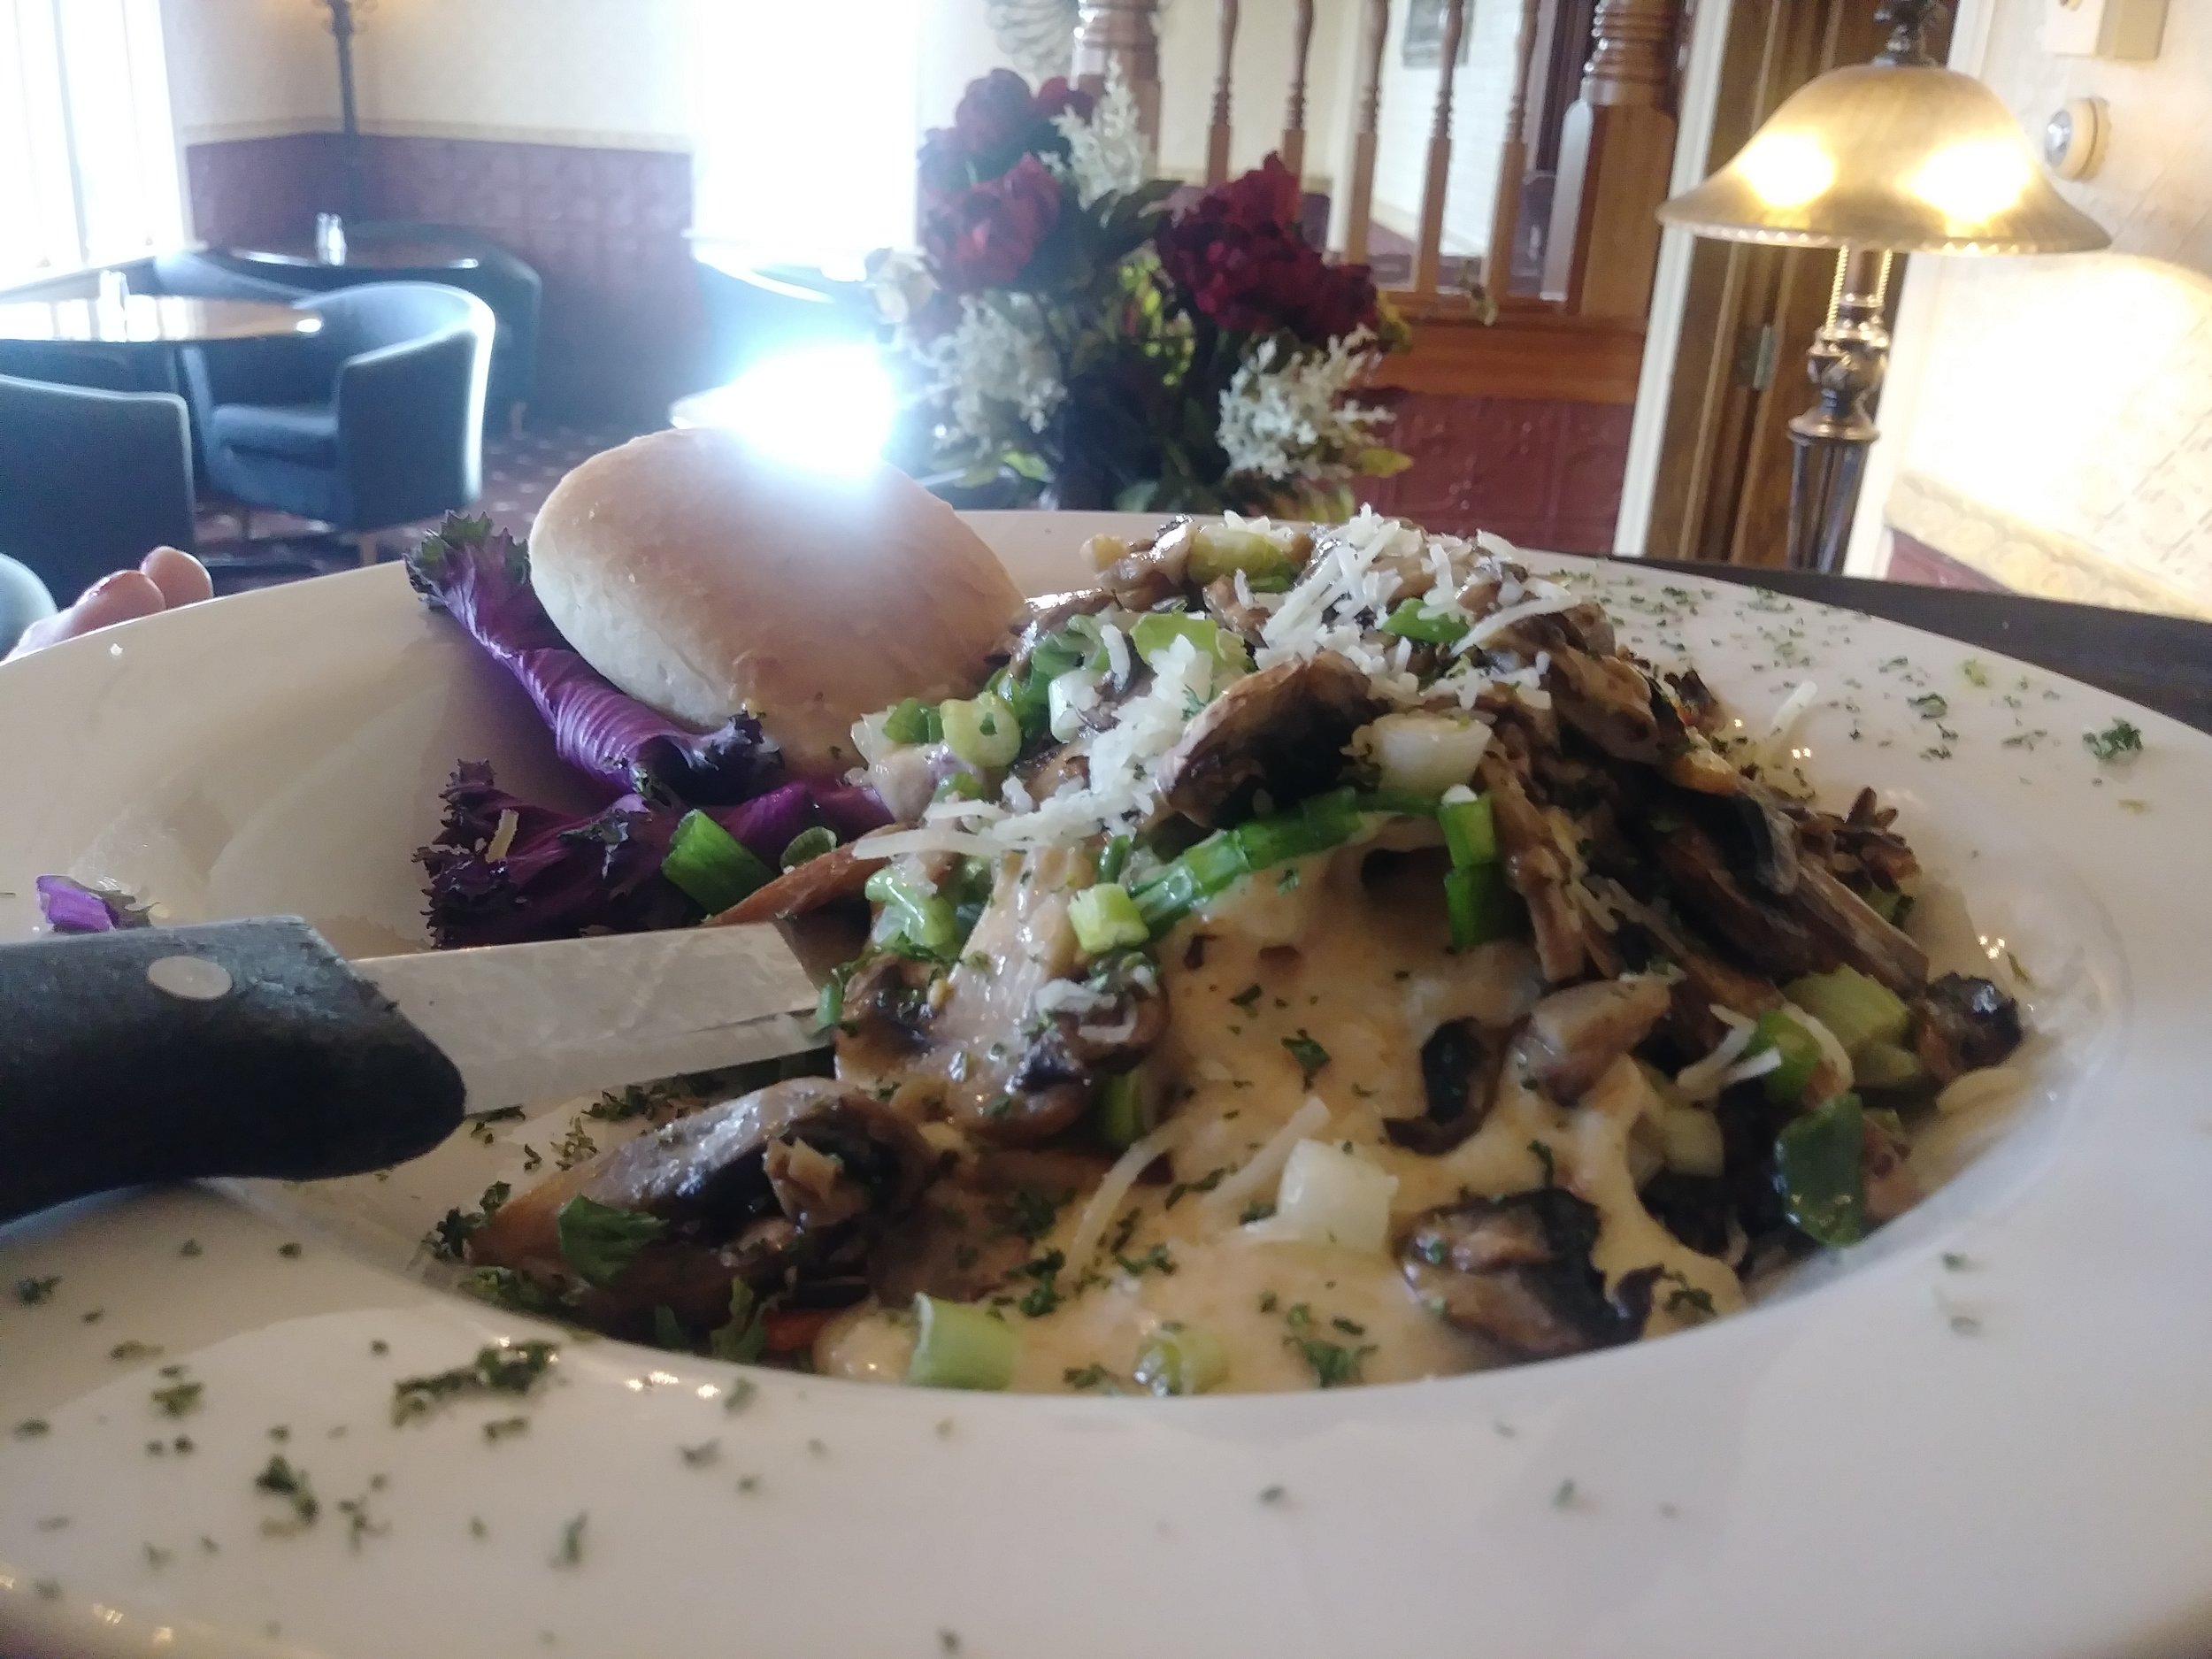 Northwoods chicken - A 6 ounce broiled chicken breast smothered with our own parmesan sauce and crowned with sautéed mushrooms & green onions, served over a rice pilaf $14.99